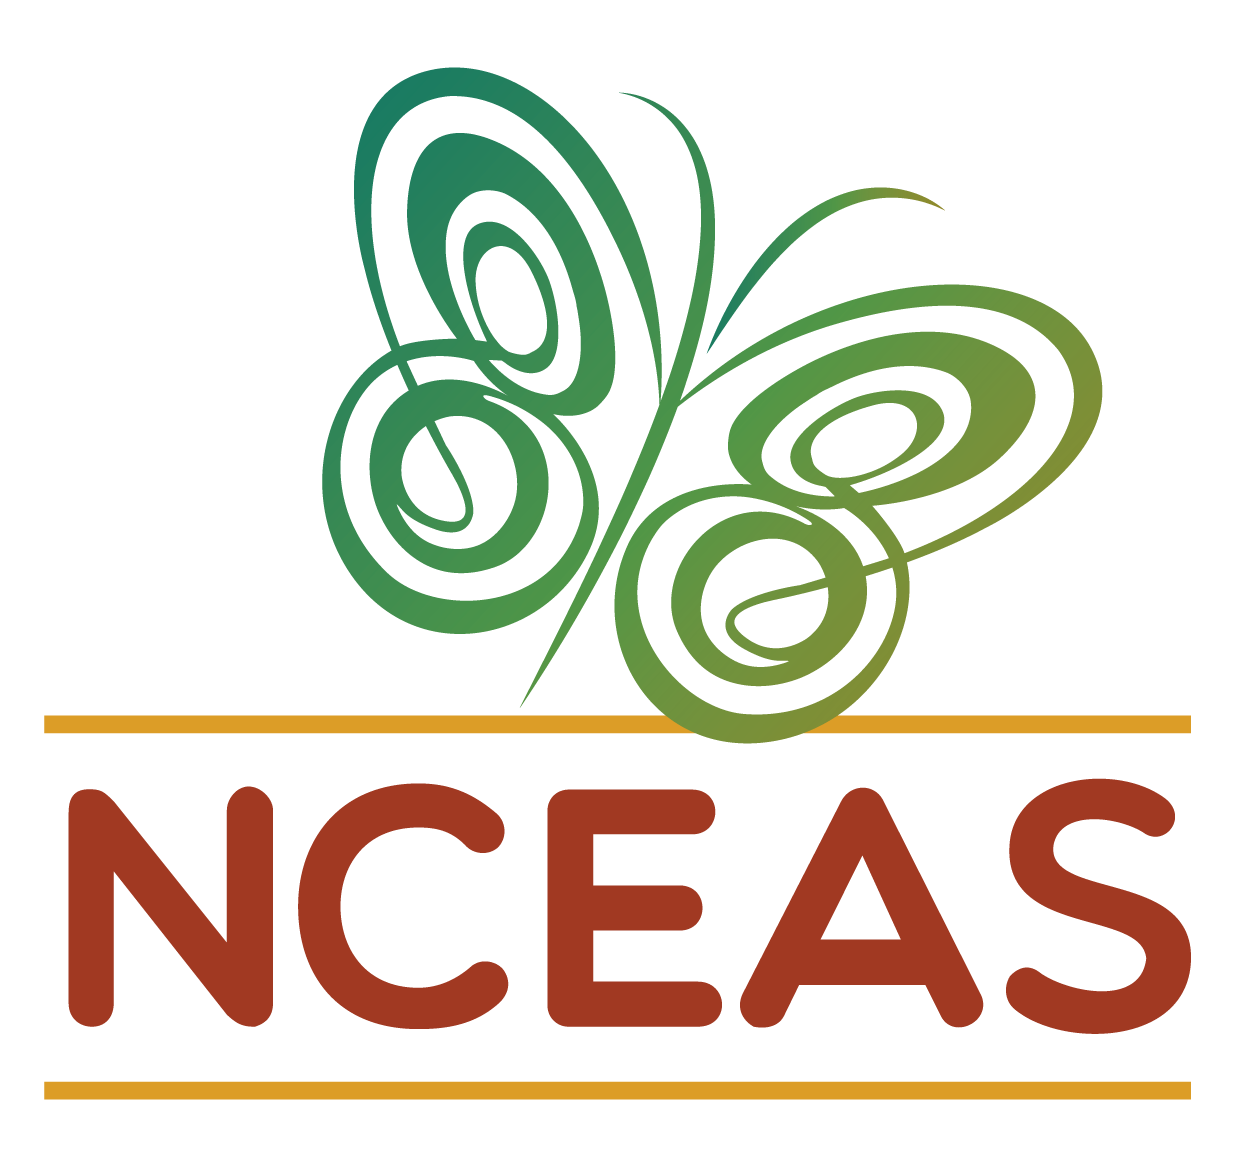 NCEAS-Stacked-4C